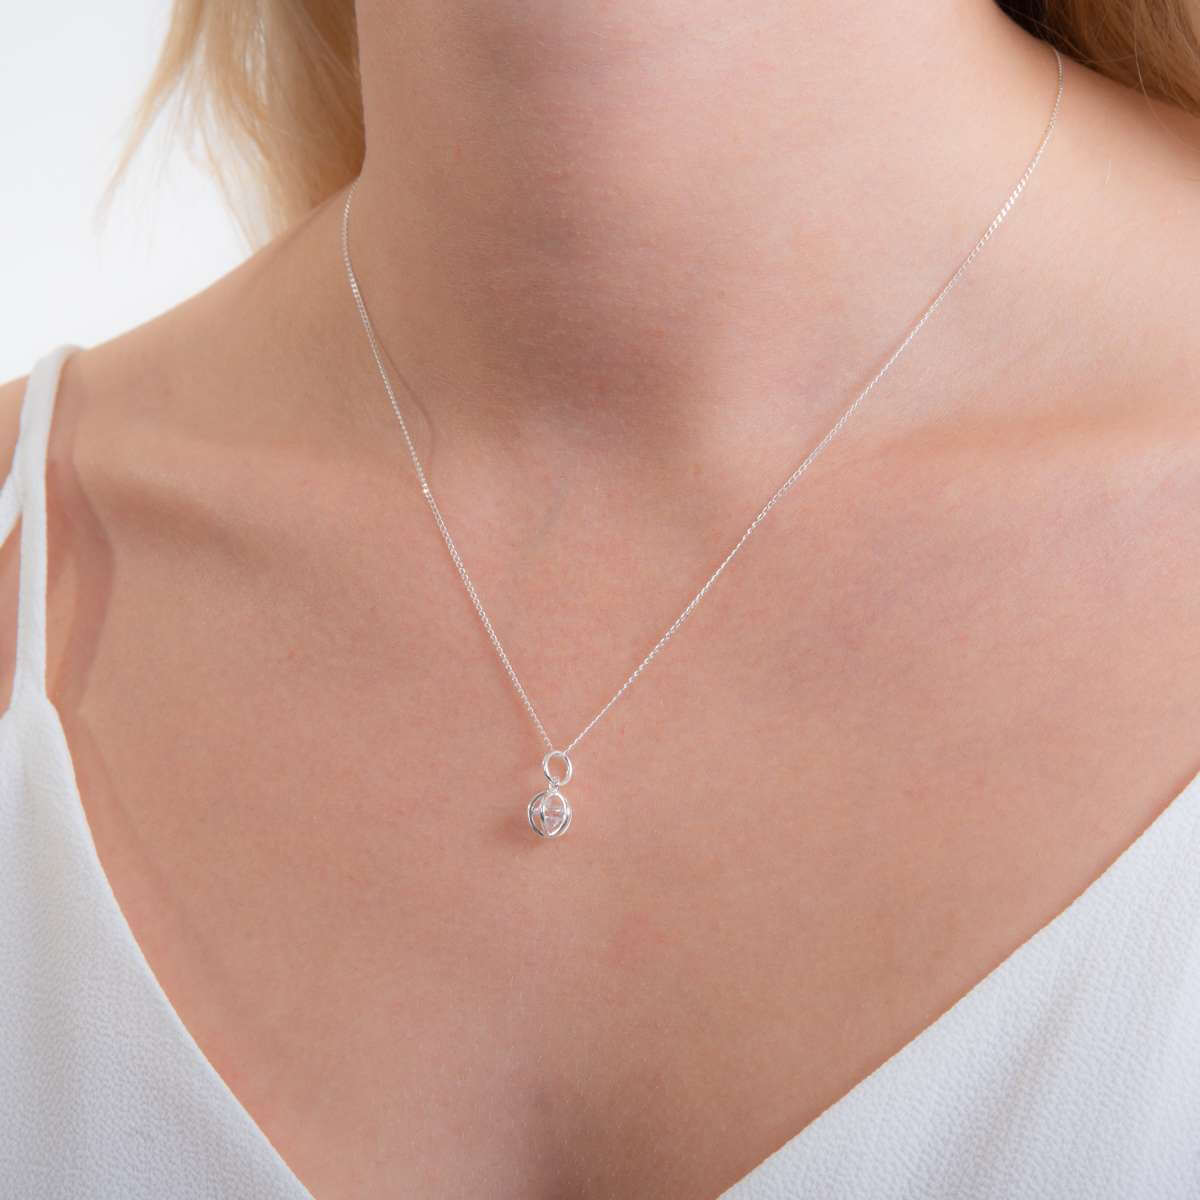 Sterling Silver & CZ Crystal Open Ball Necklace 14 - 22